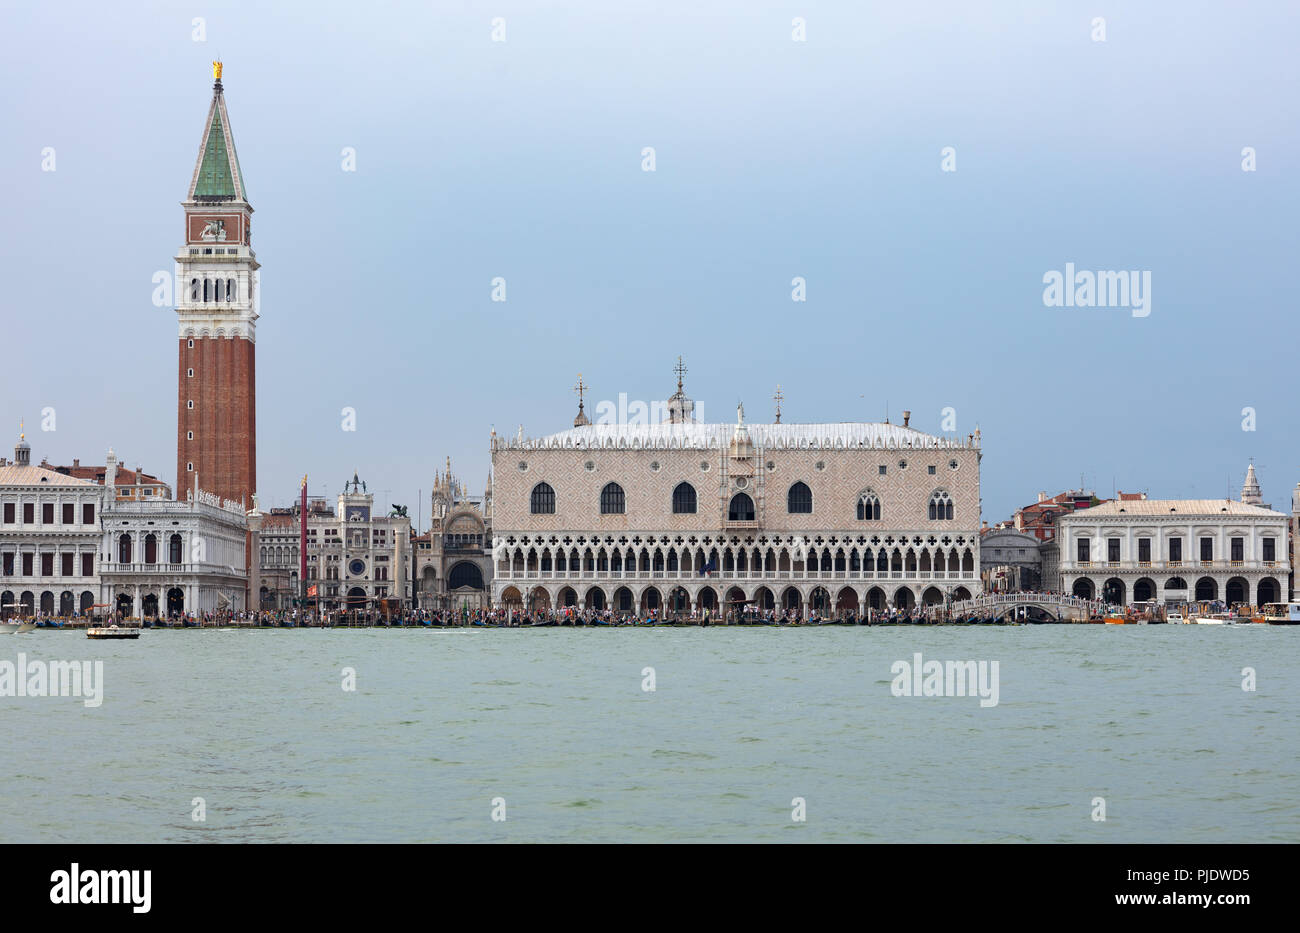 san marcos square in venice seen from the sea with hundreds of tourist walking on the edge of the lagoon stock photo alamy alamy